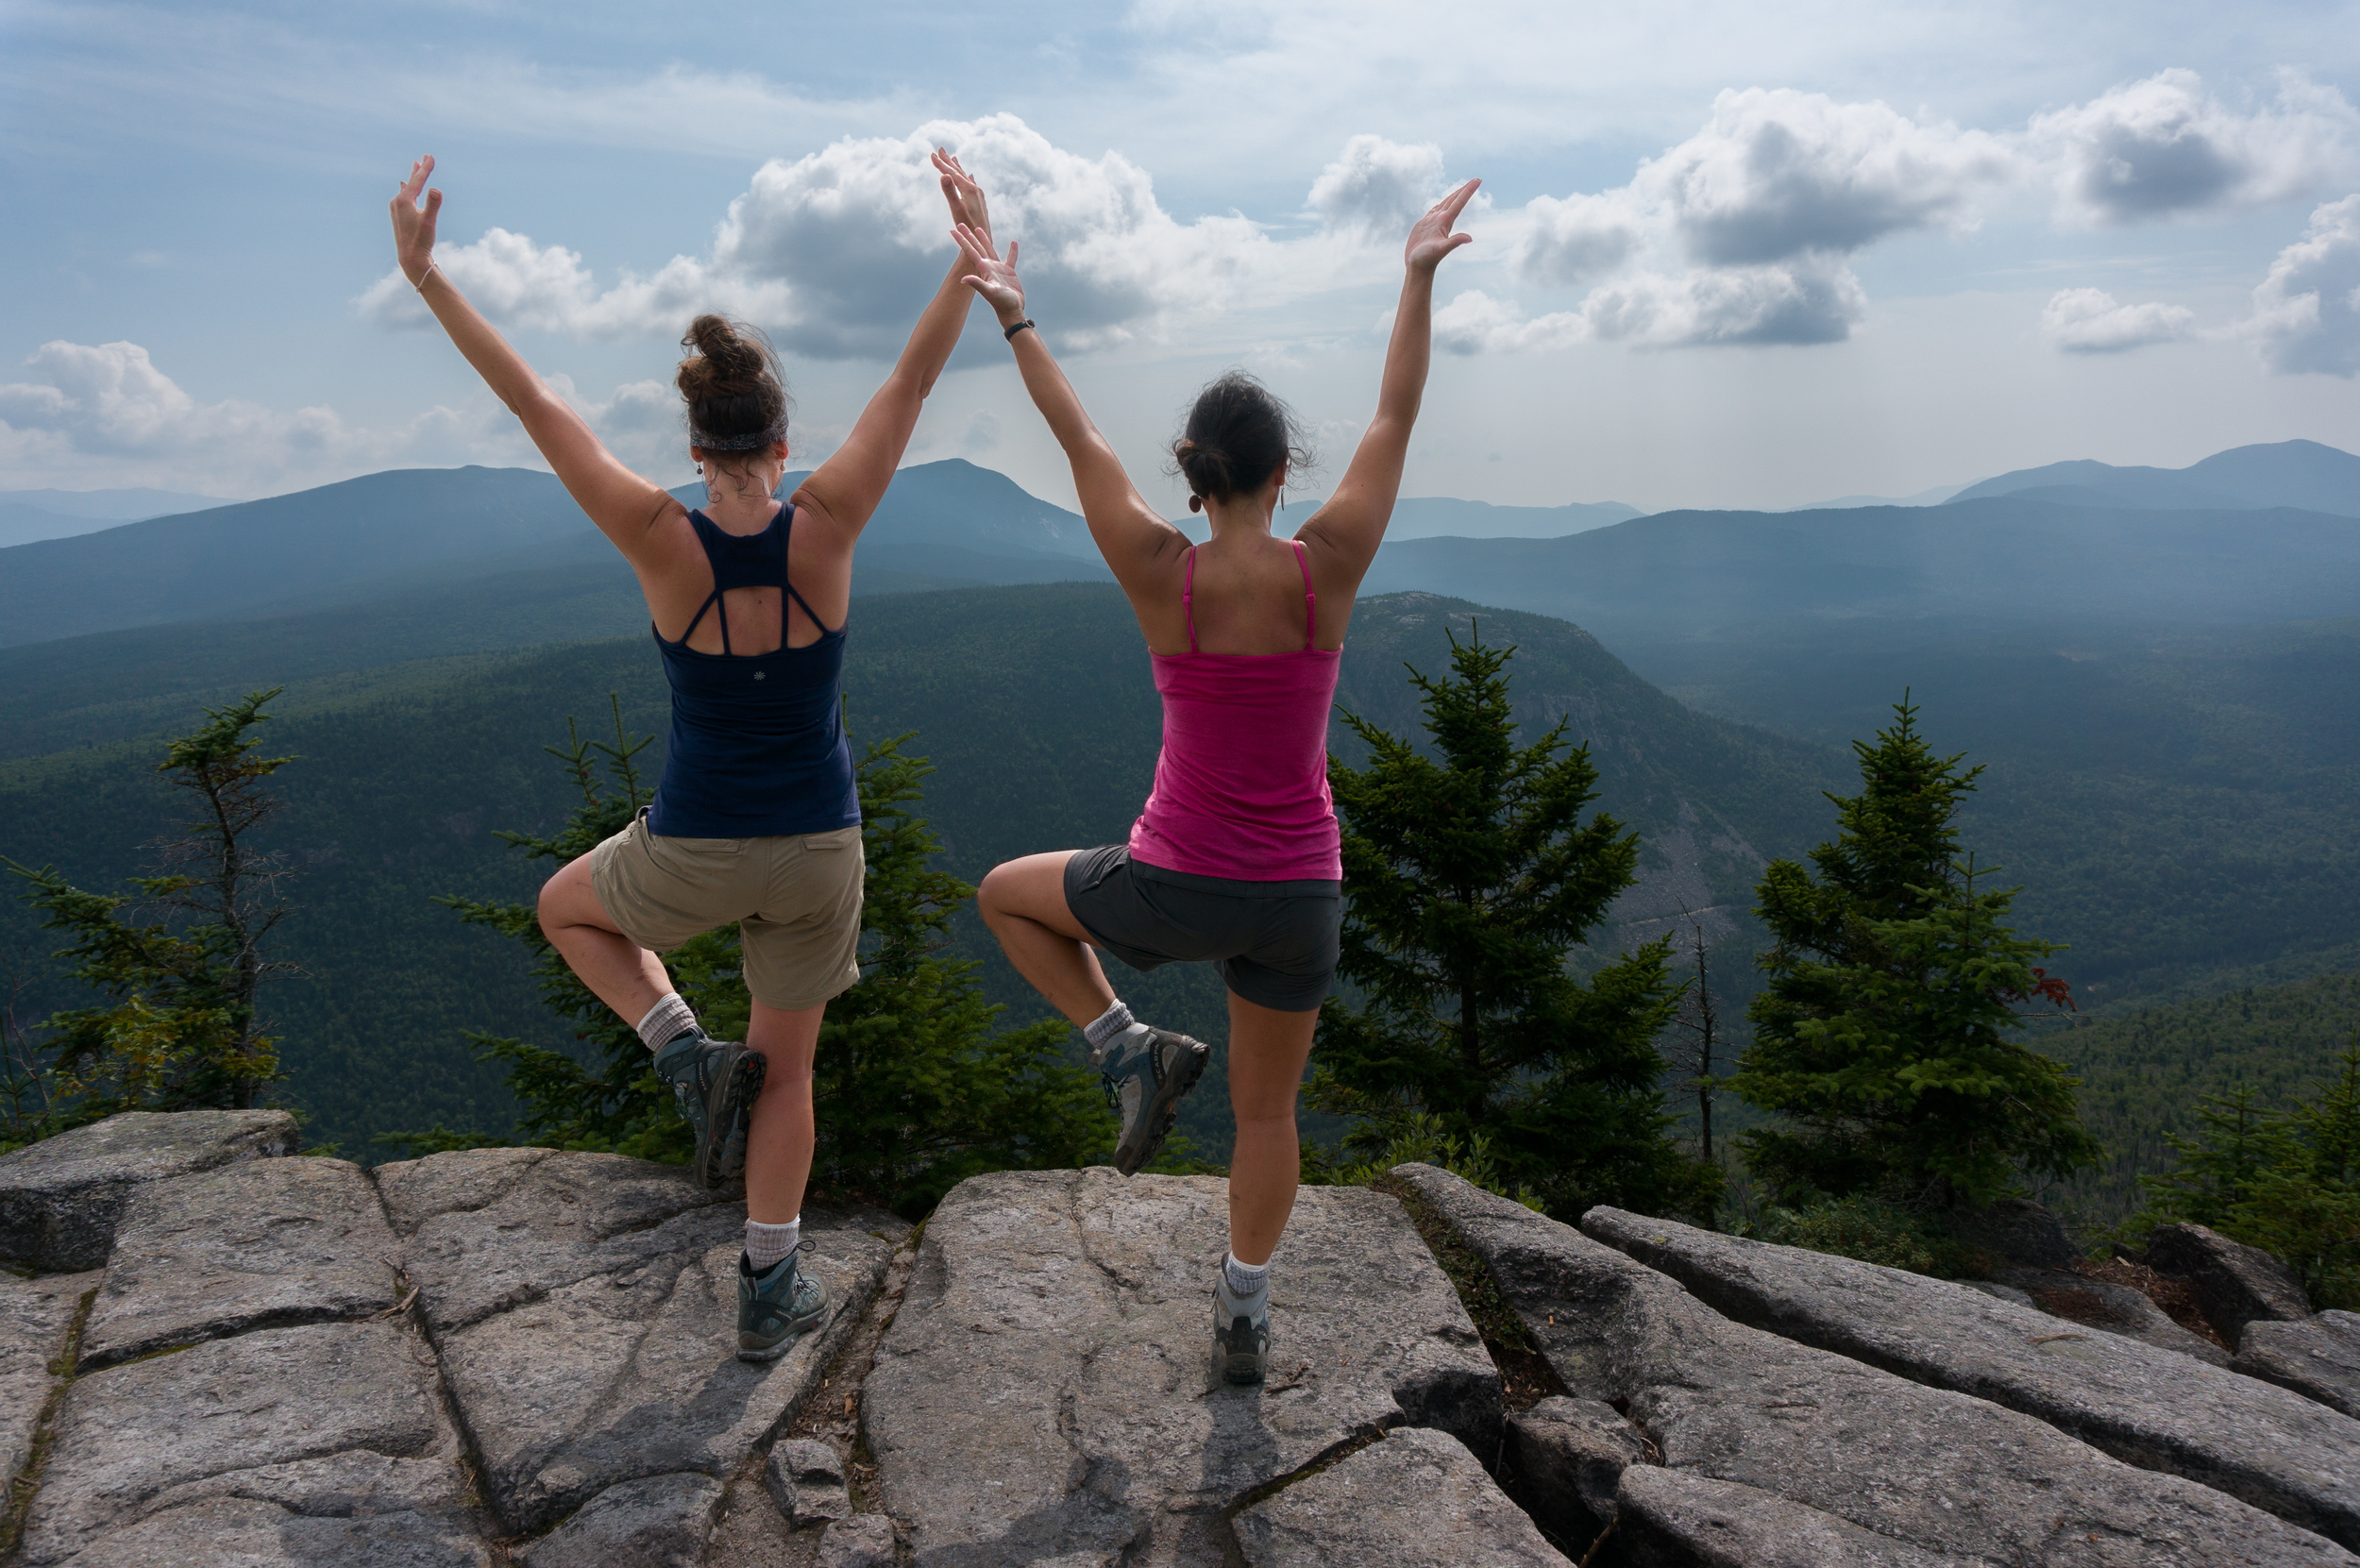 The world's best place for yoga is on a mountain